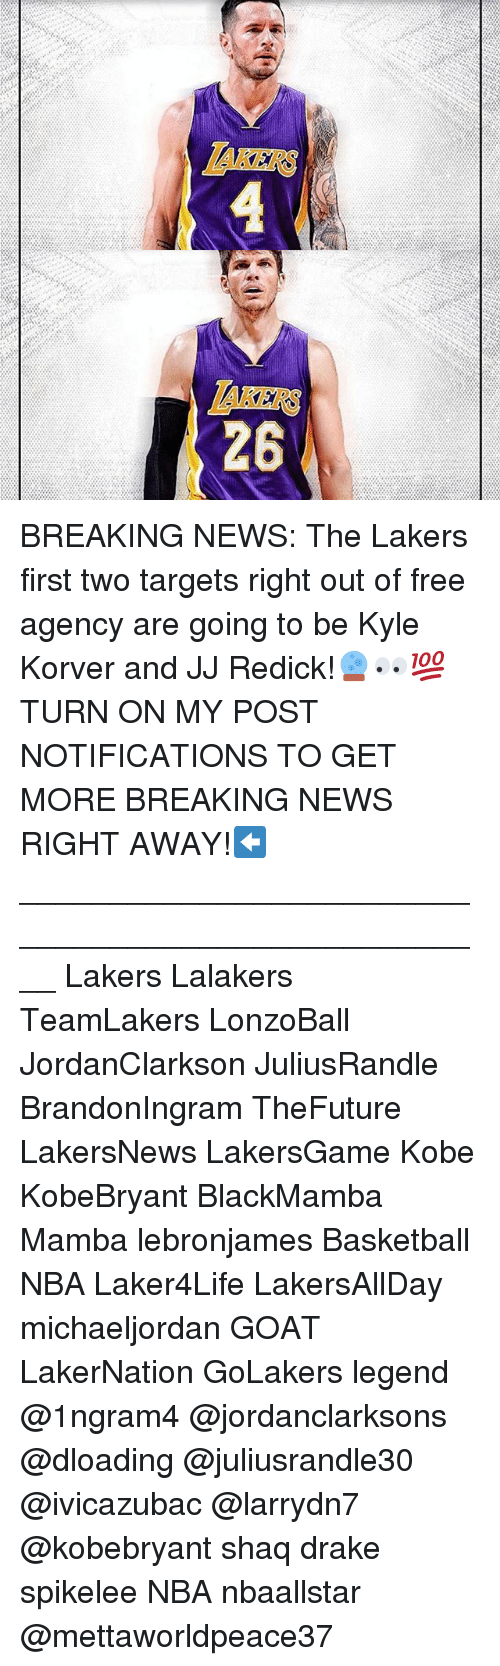 Basketball, Drake, and J.J. Redick: AKERS  26 BREAKING NEWS: The Lakers first two targets right out of free agency are going to be Kyle Korver and JJ Redick!🔮👀💯 TURN ON MY POST NOTIFICATIONS TO GET MORE BREAKING NEWS RIGHT AWAY!⬅️ ____________________________________________________ Lakers Lalakers TeamLakers LonzoBall JordanClarkson JuliusRandle BrandonIngram TheFuture LakersNews LakersGame Kobe KobeBryant BlackMamba Mamba lebronjames Basketball NBA Laker4Life LakersAllDay michaeljordan GOAT LakerNation GoLakers legend @1ngram4 @jordanclarksons @dloading @juliusrandle30 @ivicazubac @larrydn7 @kobebryant shaq drake spikelee NBA nbaallstar @mettaworldpeace37